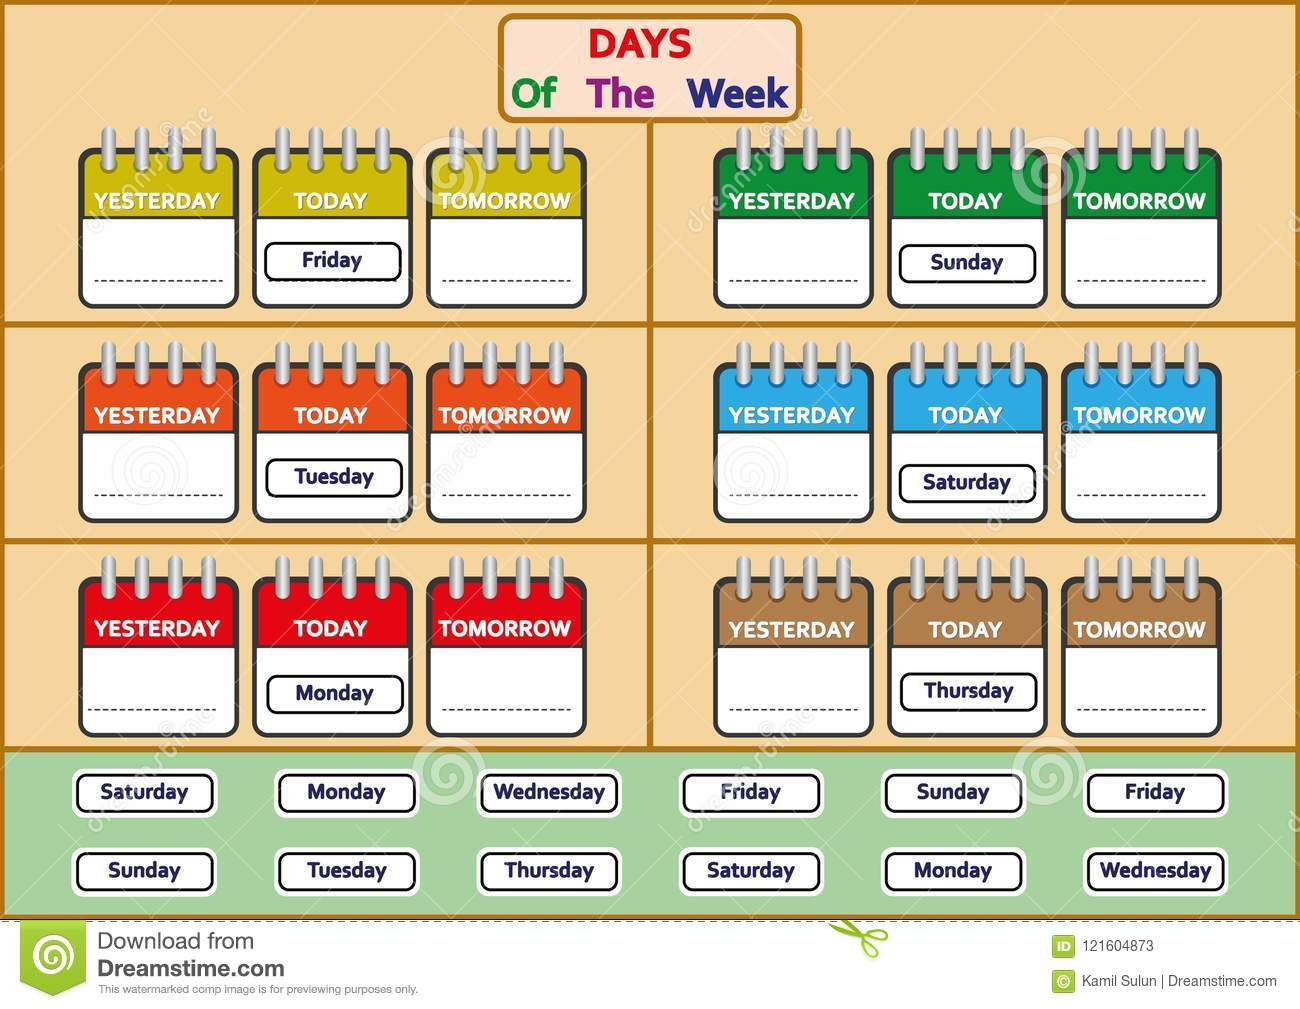 Days Of The Week Worksheets, Trace And Write The Days Of The Week ...